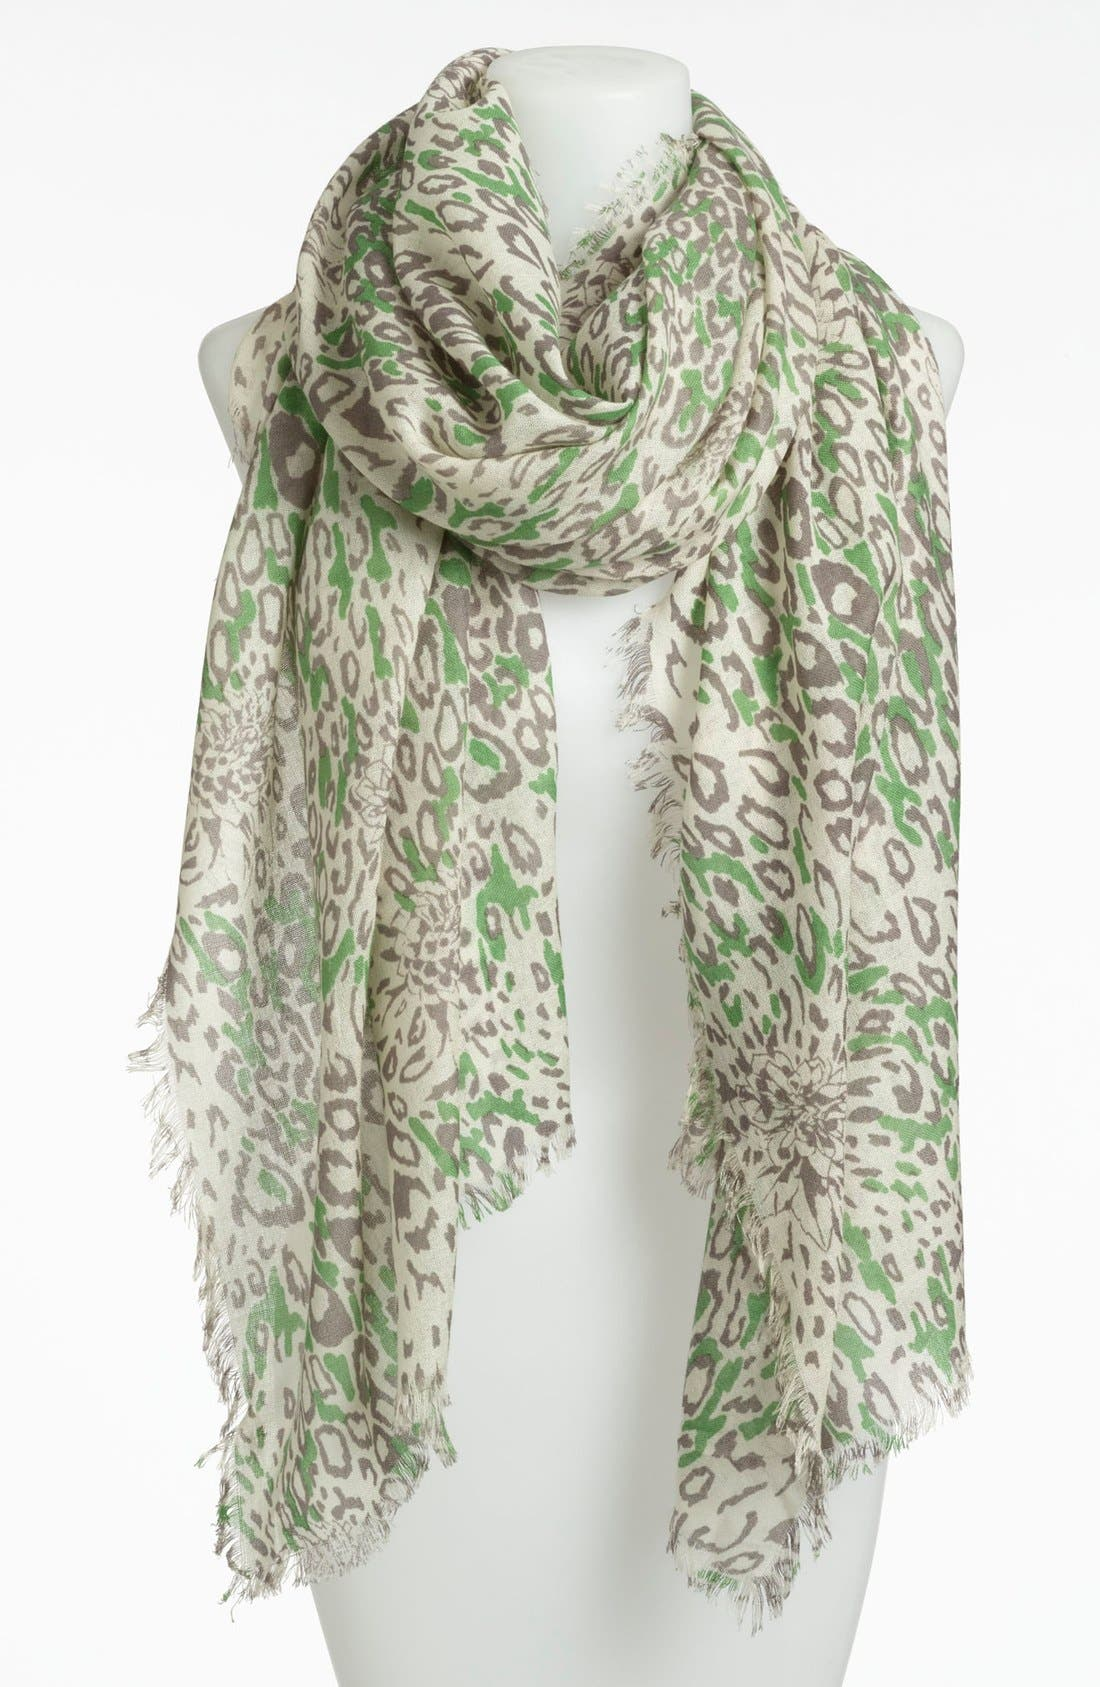 Alternate Image 1 Selected - Nordstrom 'Garden Leopard' Print Wool Scarf